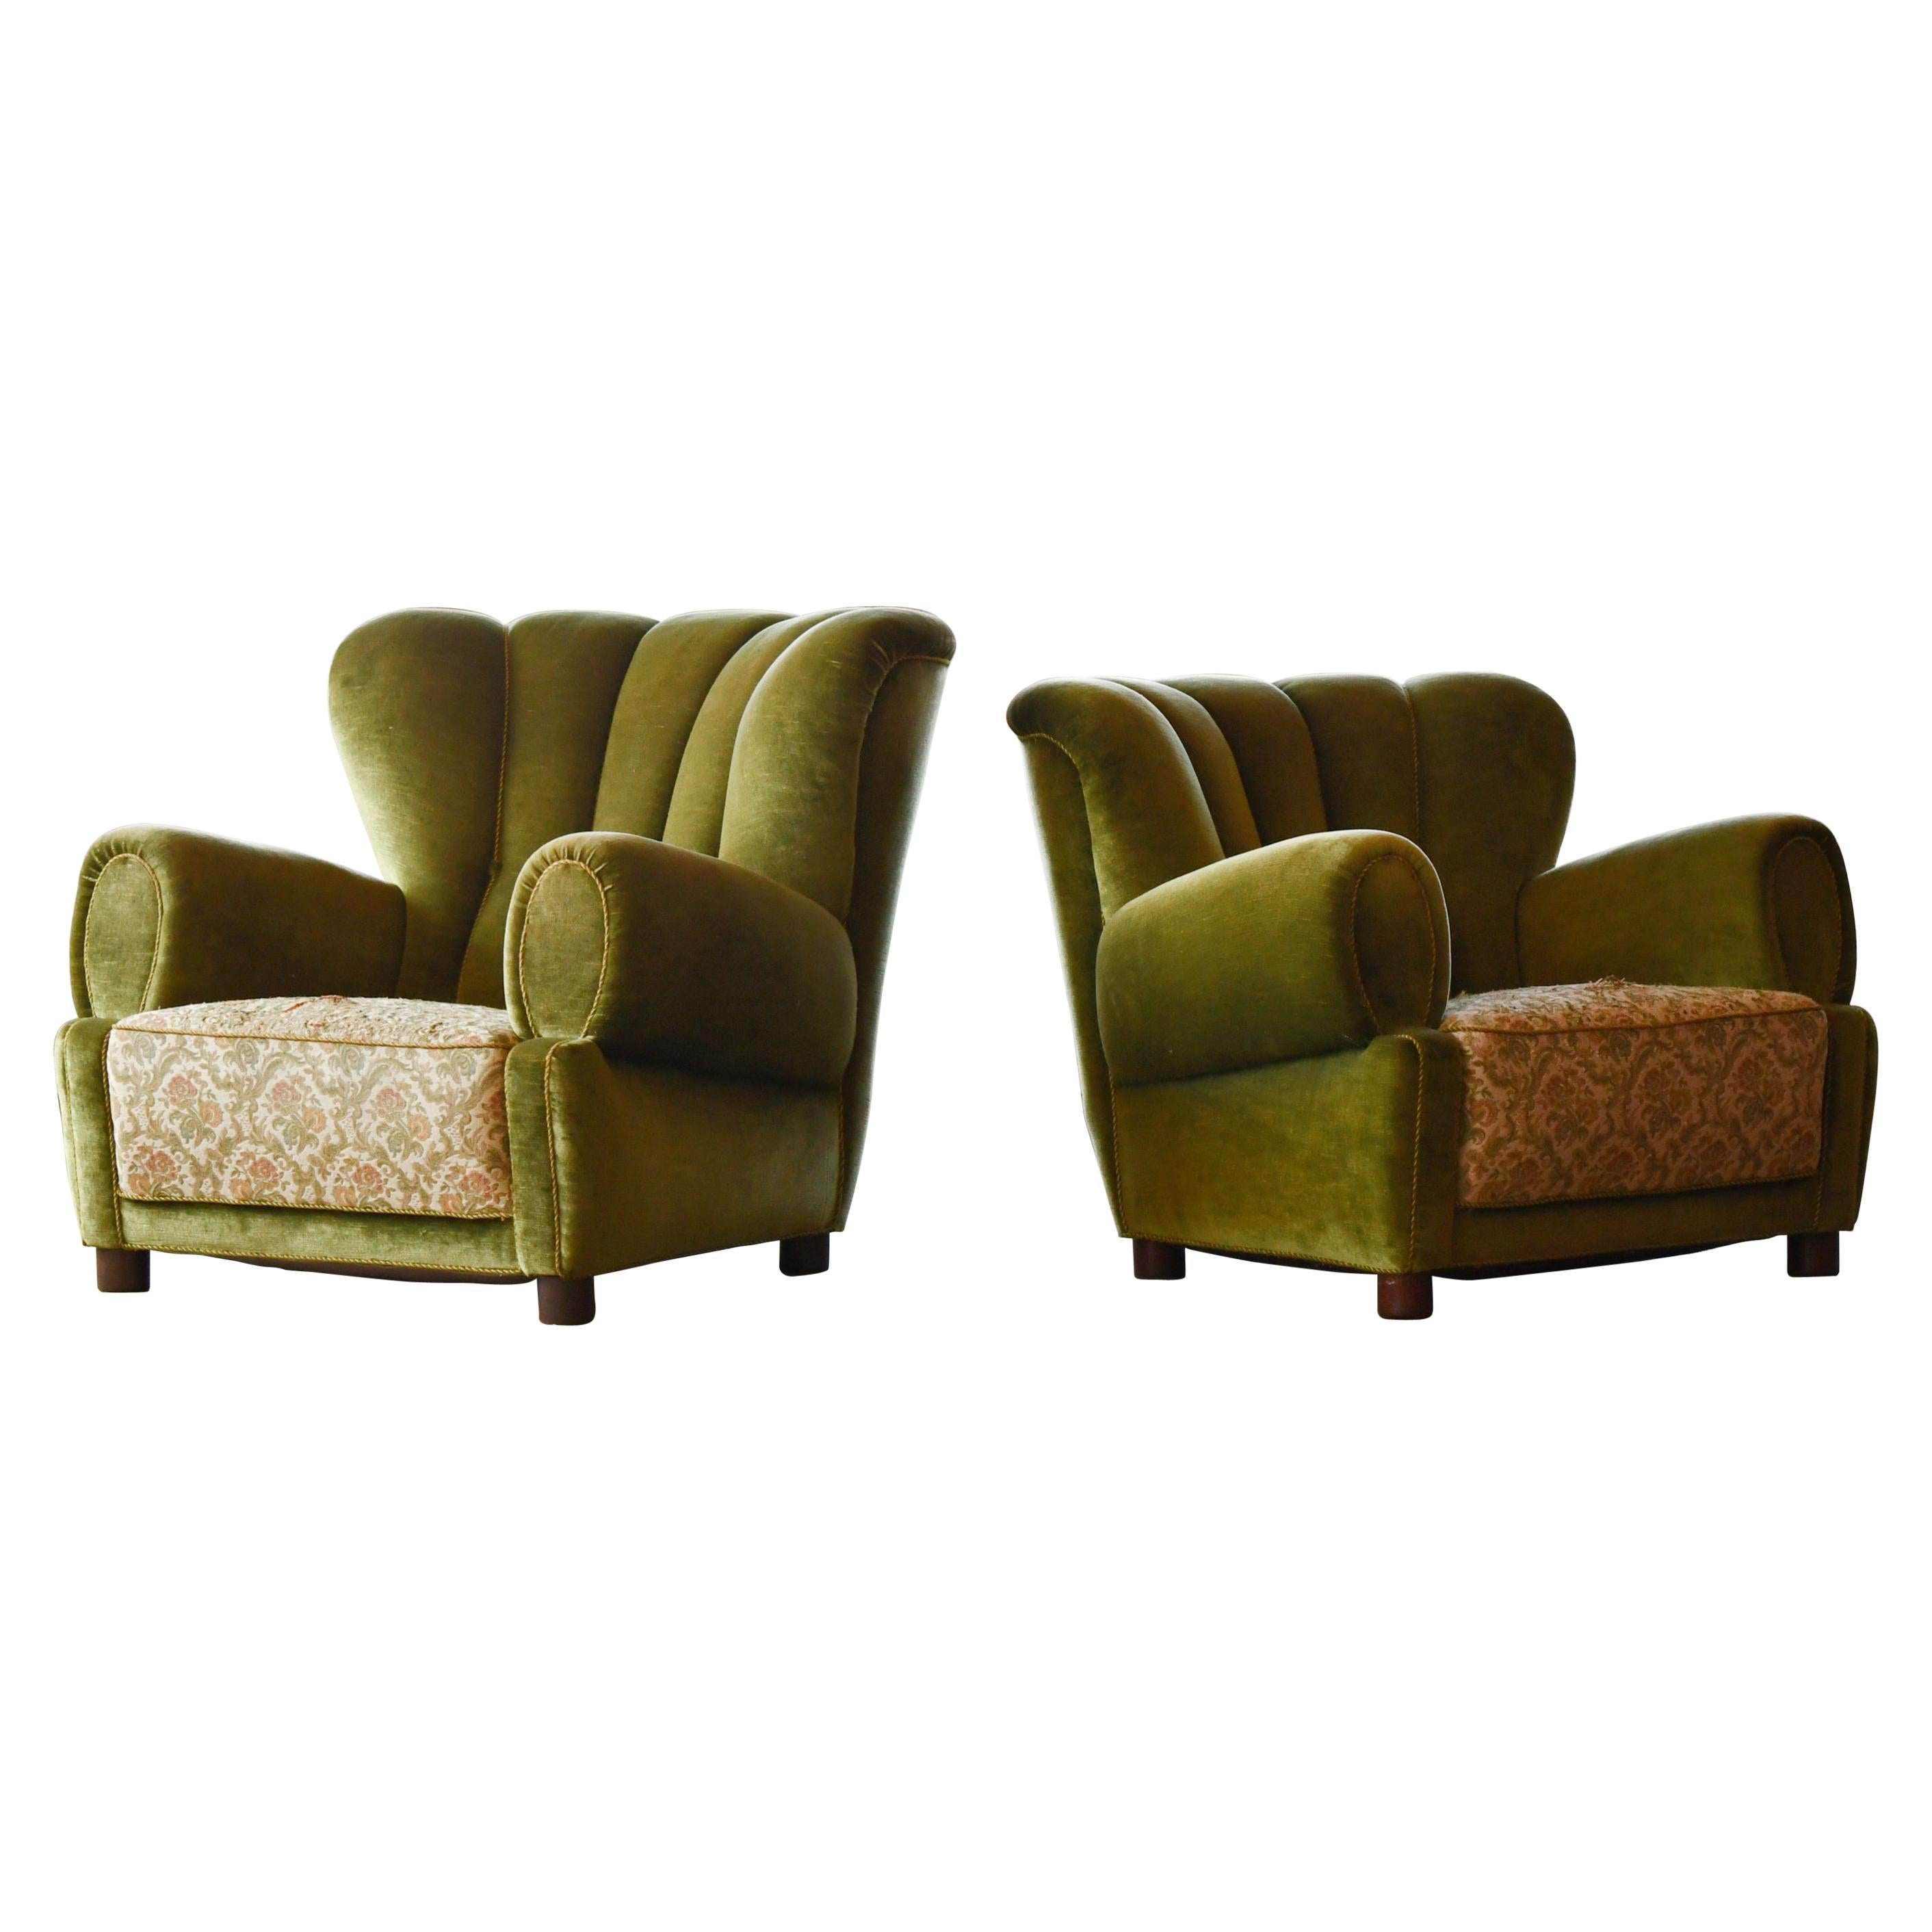 Pair of Sublime Danish 1940's Large Scale Club Chair Sin Style of Fritz Hansen